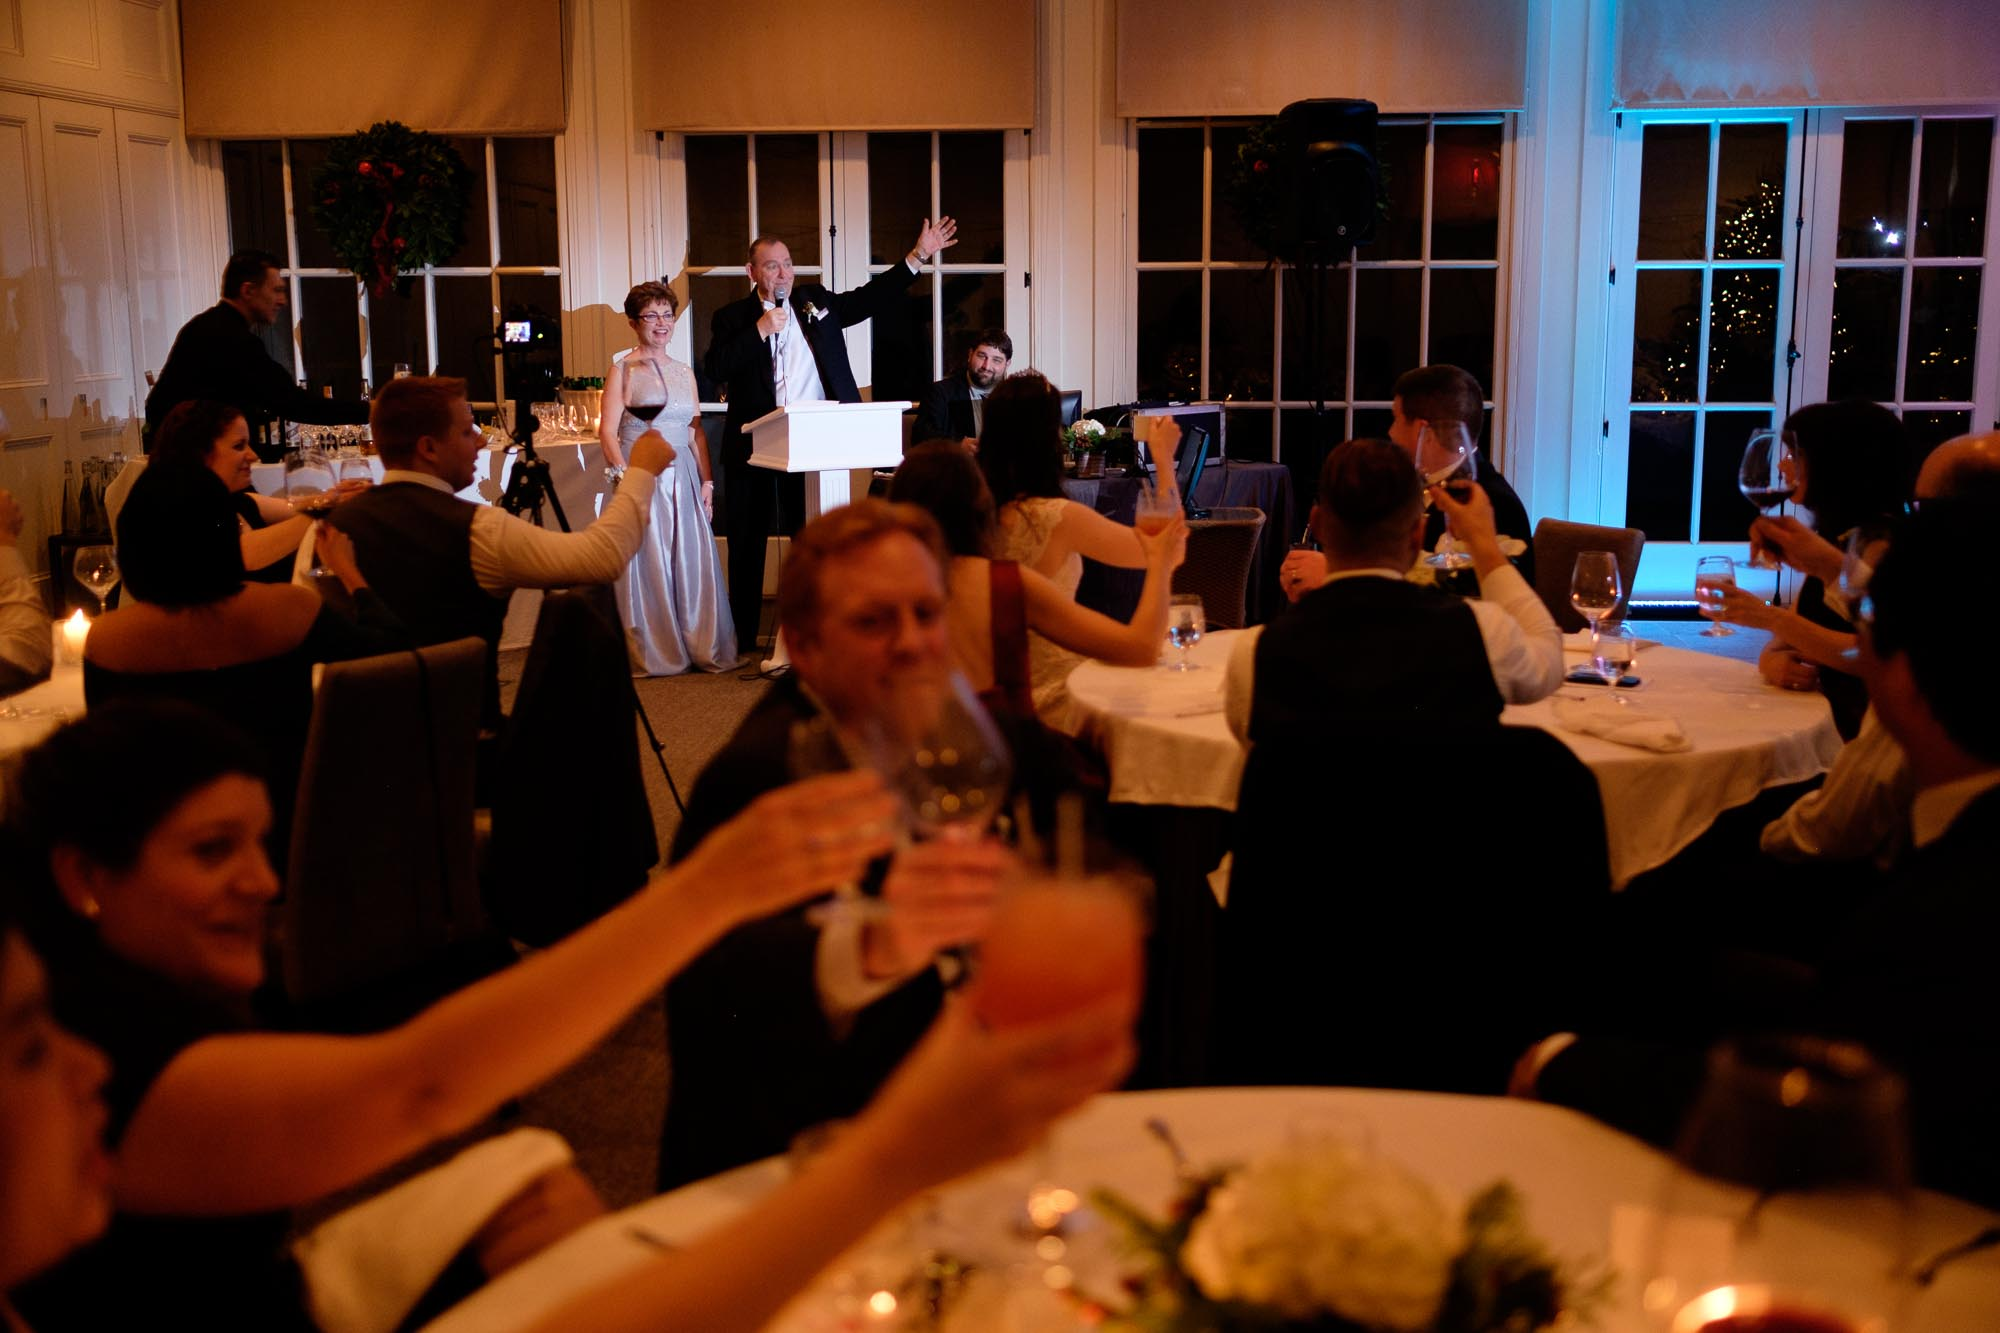 The bride's parents toast the newlywed couple during their wedding reception at Langdon Hall in Cambridge, Ontario.